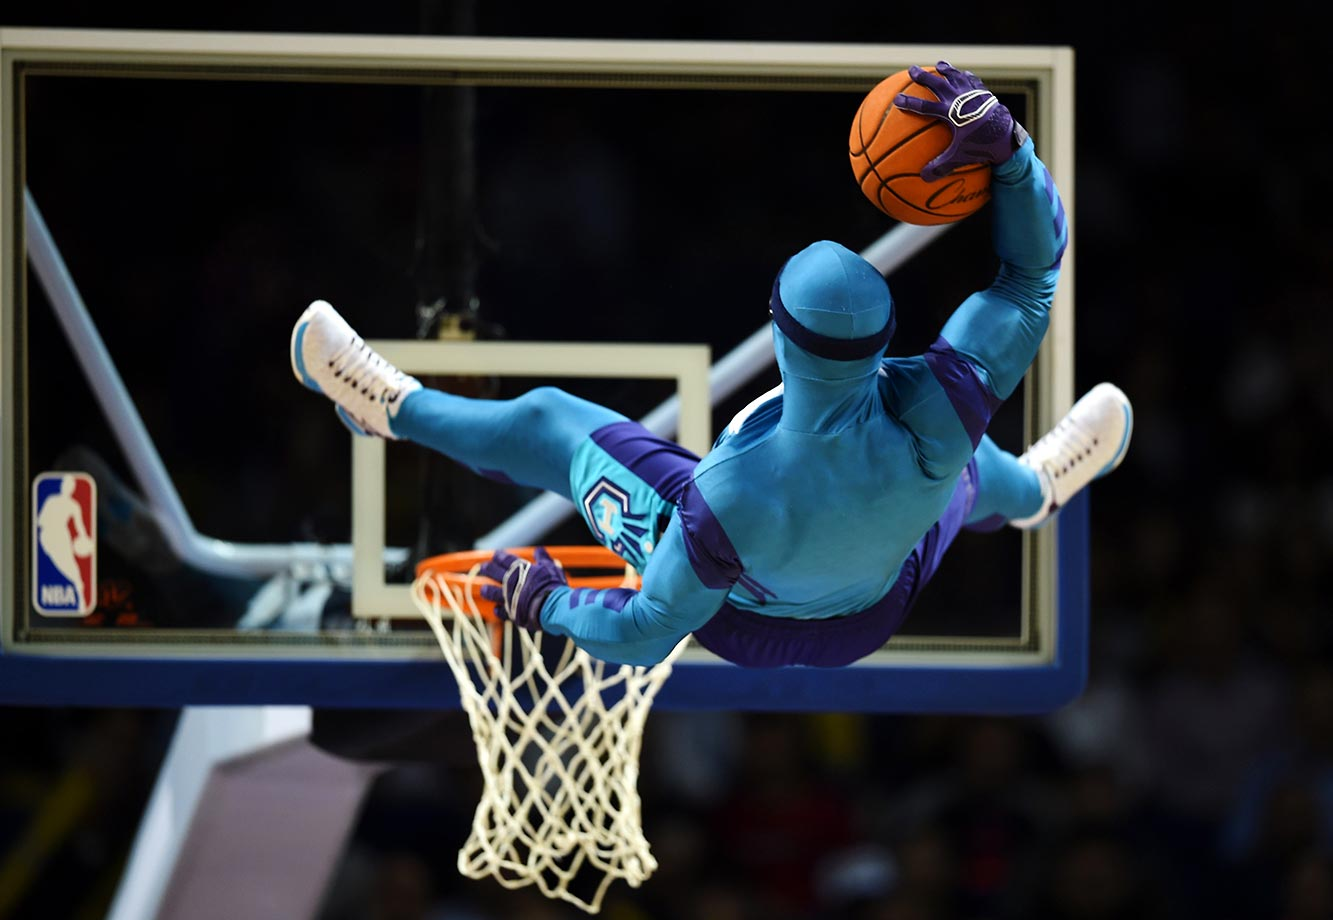 A fancy stunt before the 2015 NBA Global Games China preseason basketball match.